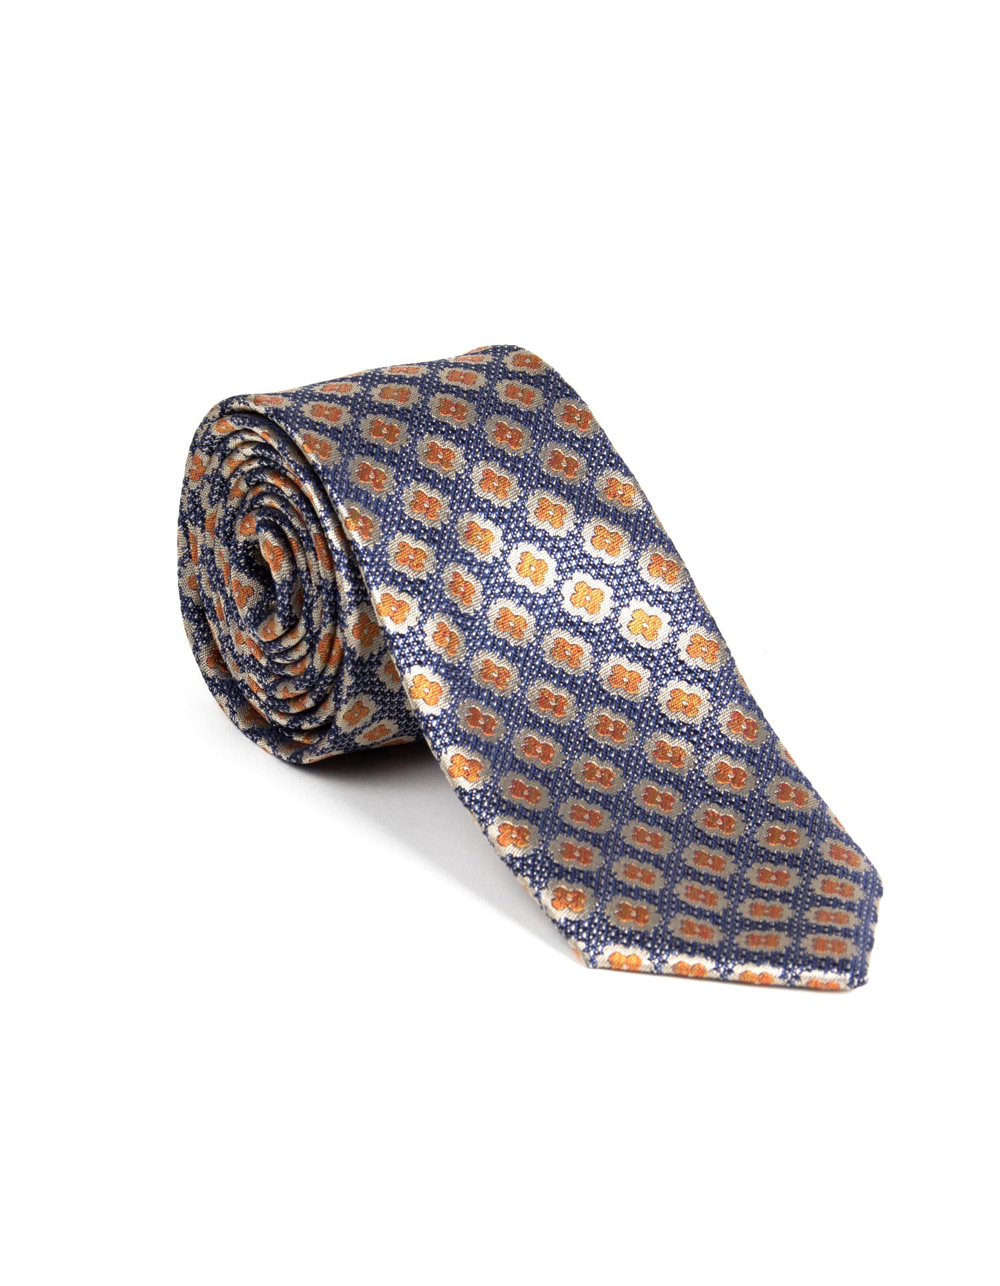 Blue tie with floral print